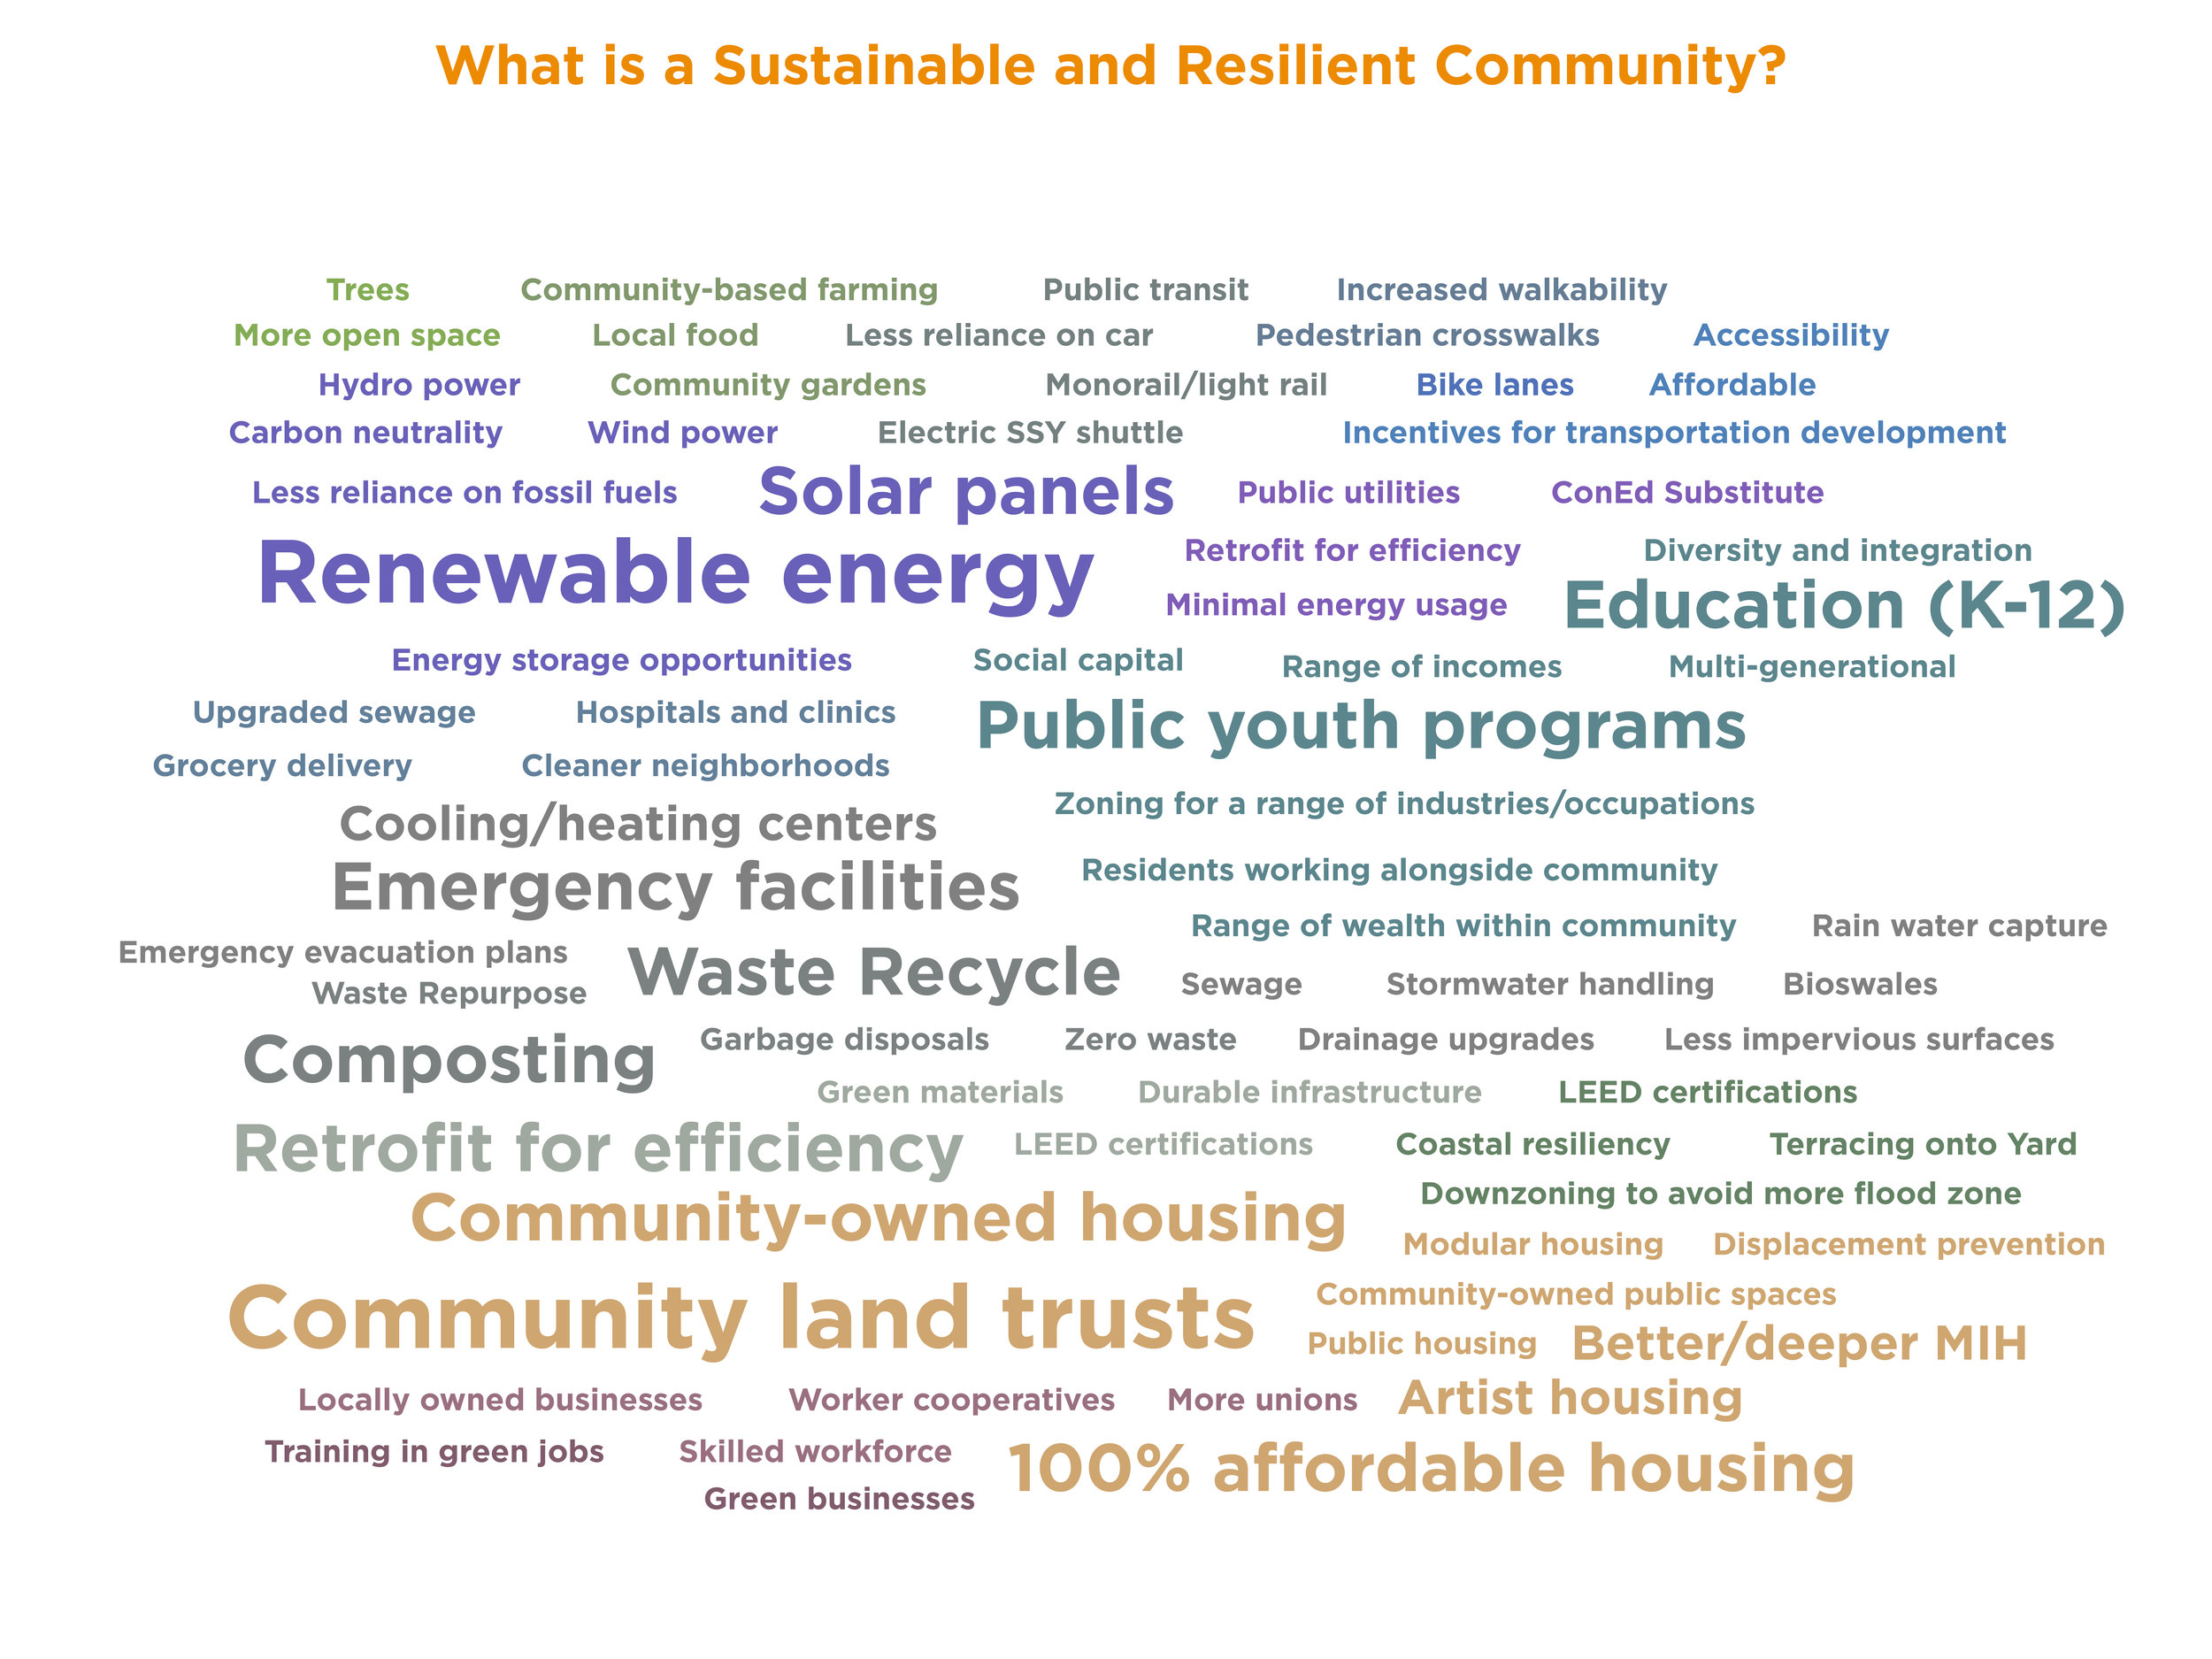 190531_PAU_SSY_Public Workshop Findings Summary Graph9.jpg